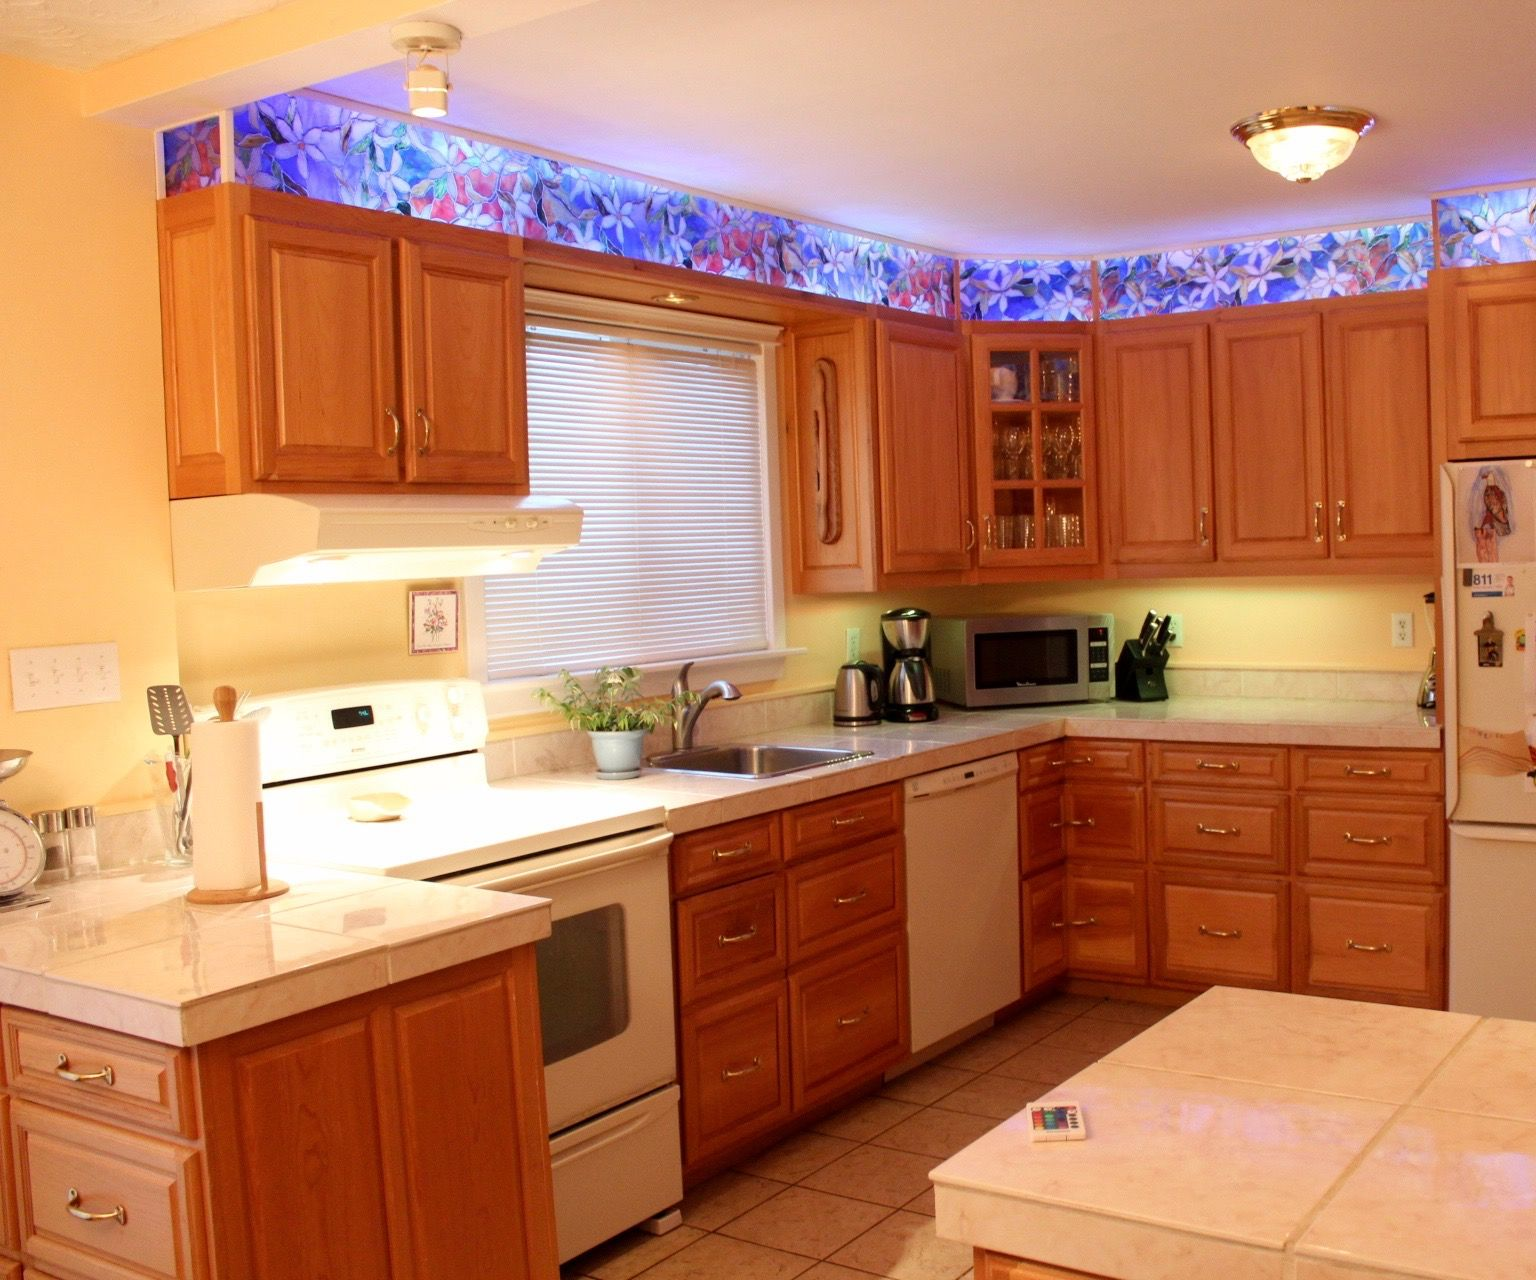 Kitchen cabinet faux stained glass and LED lighting